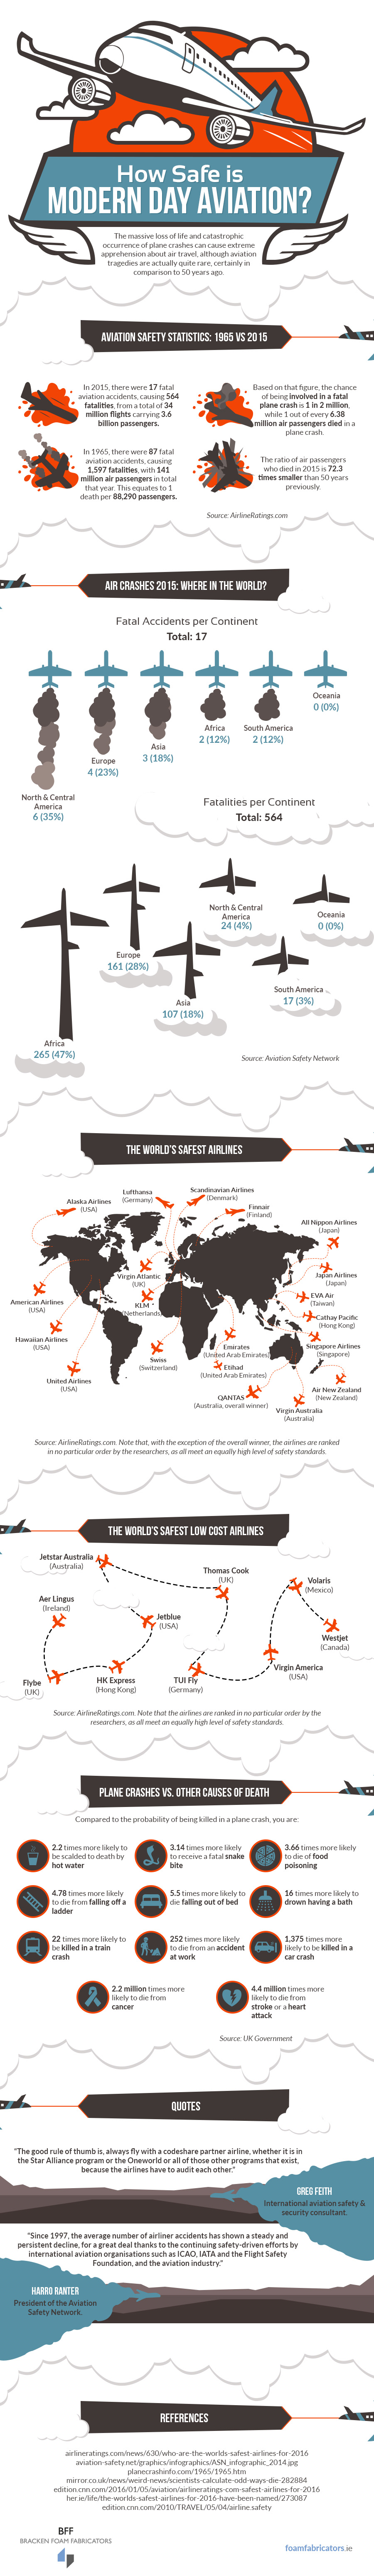 How Safe is Modern Day Aviation?